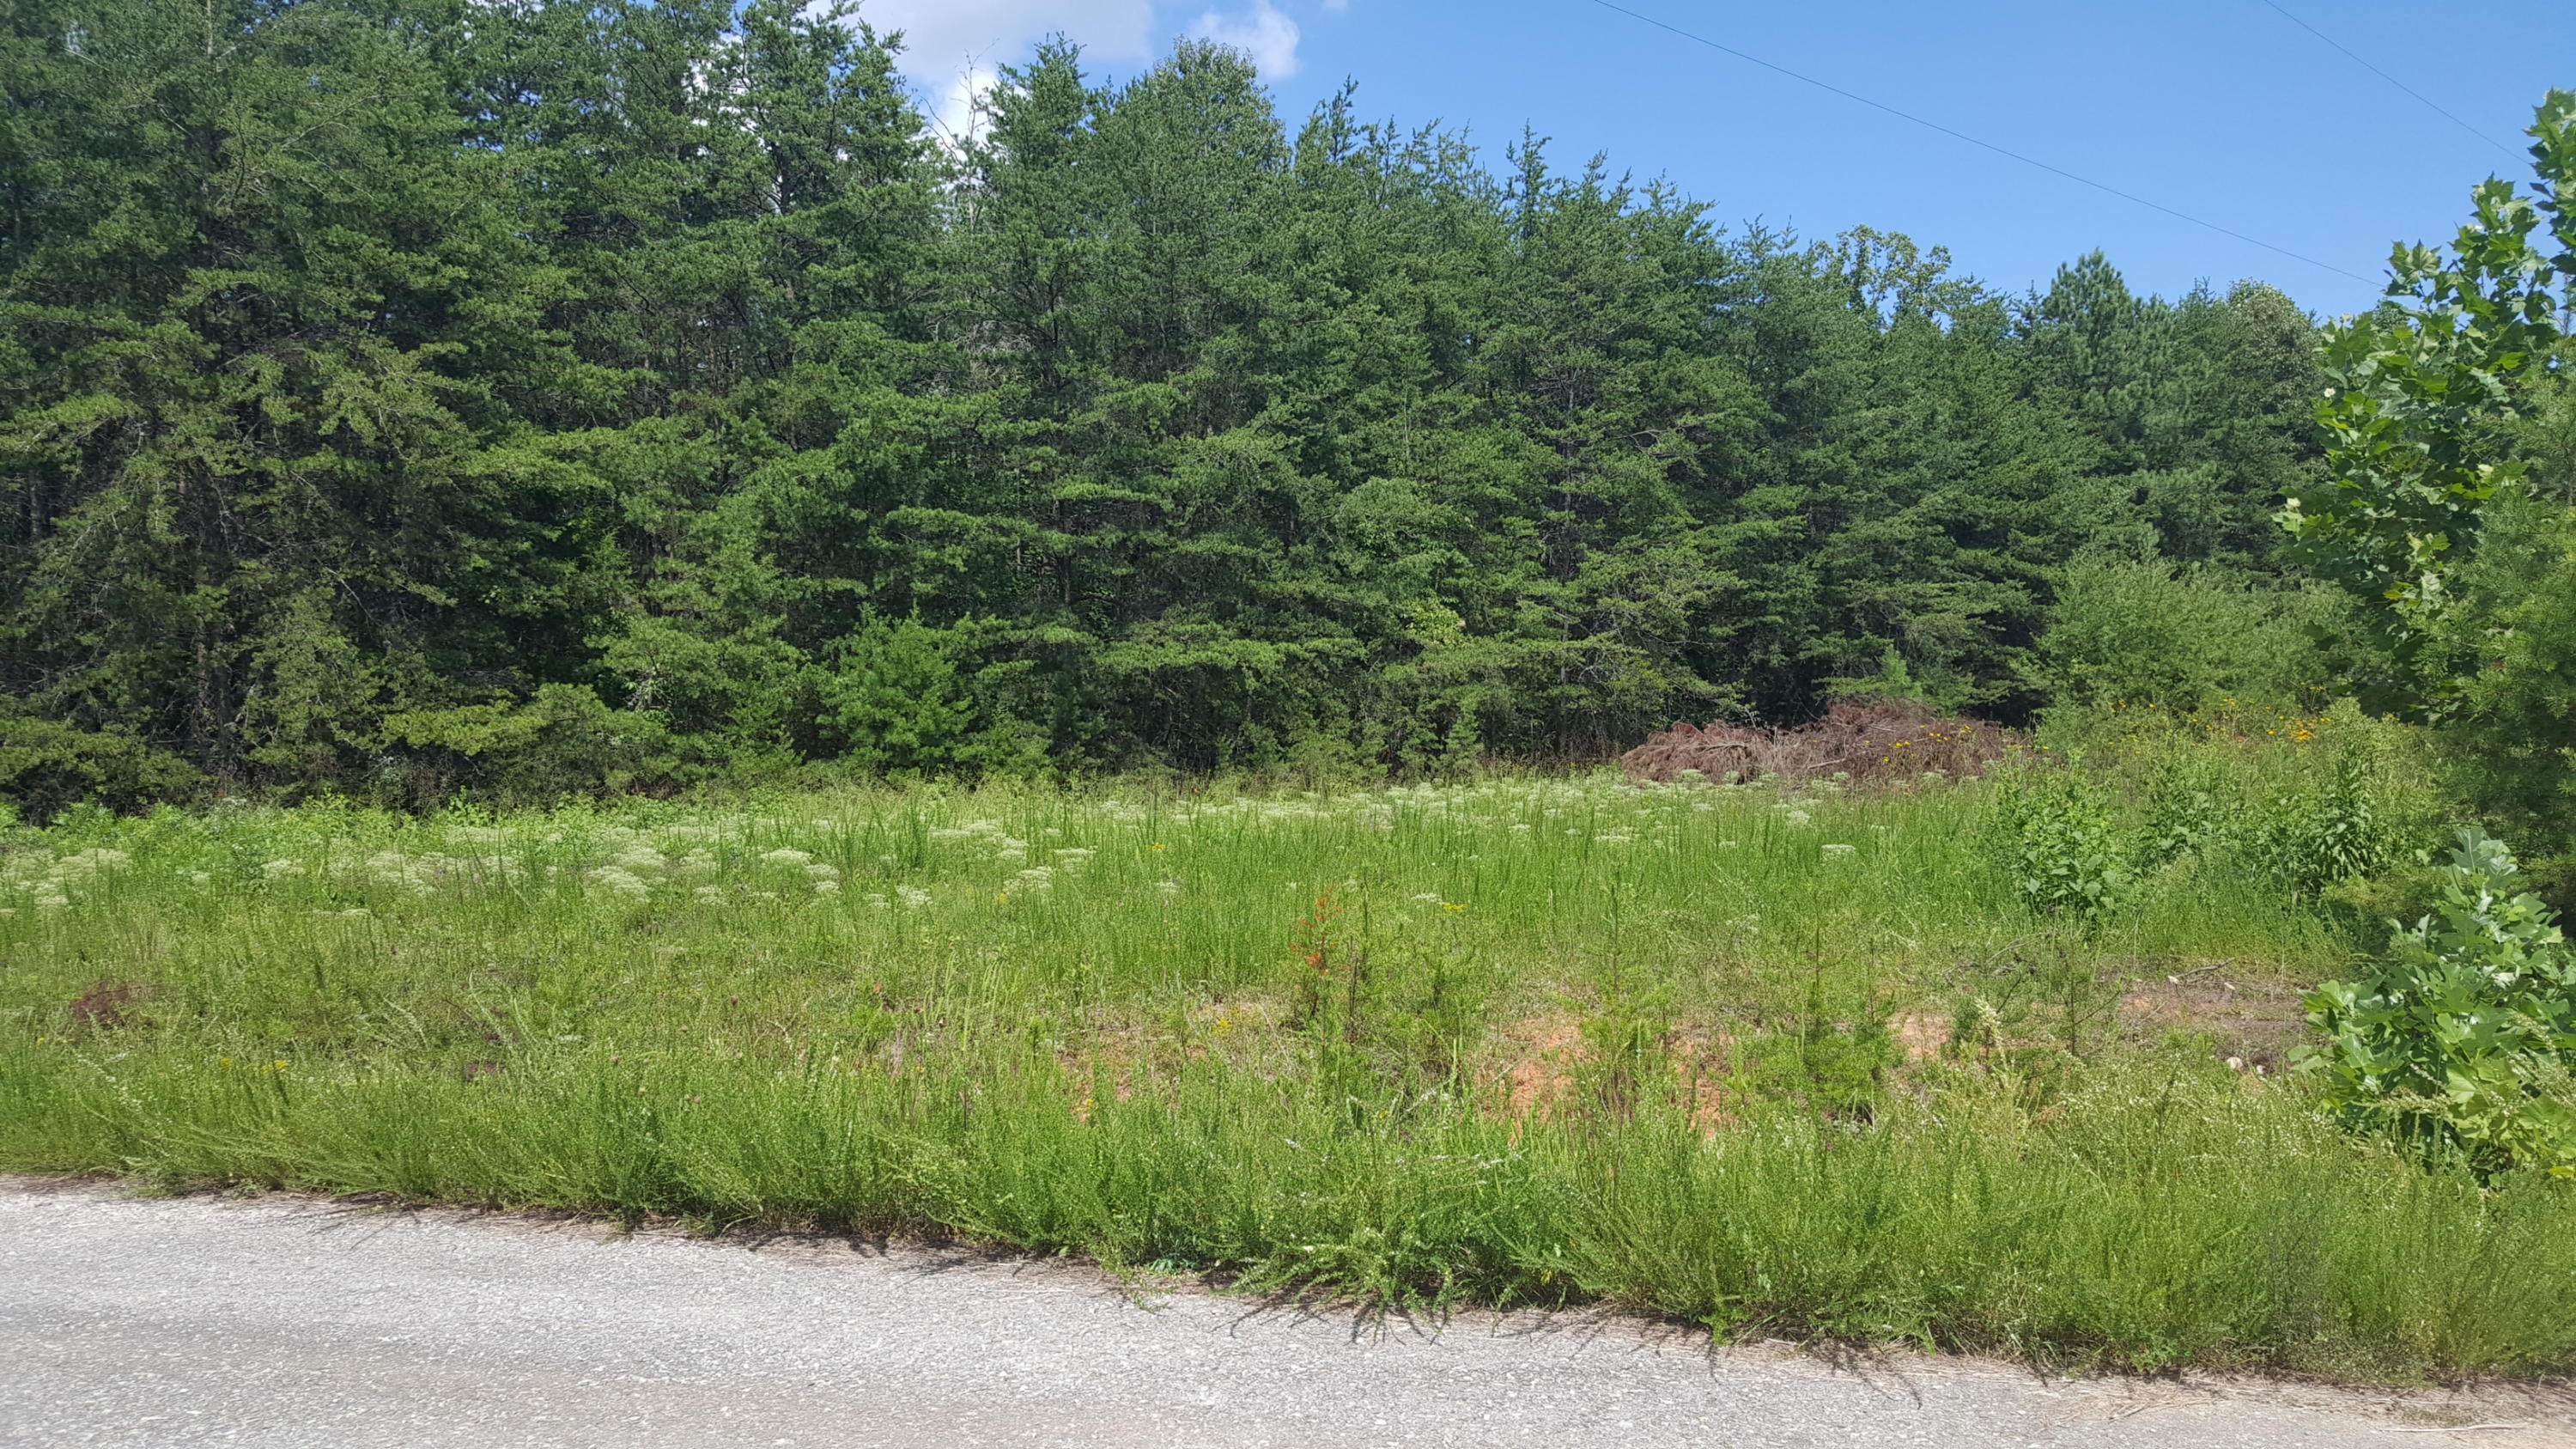 Photo of Lot 49 Dillon Cabin RD Moneta VA 24121